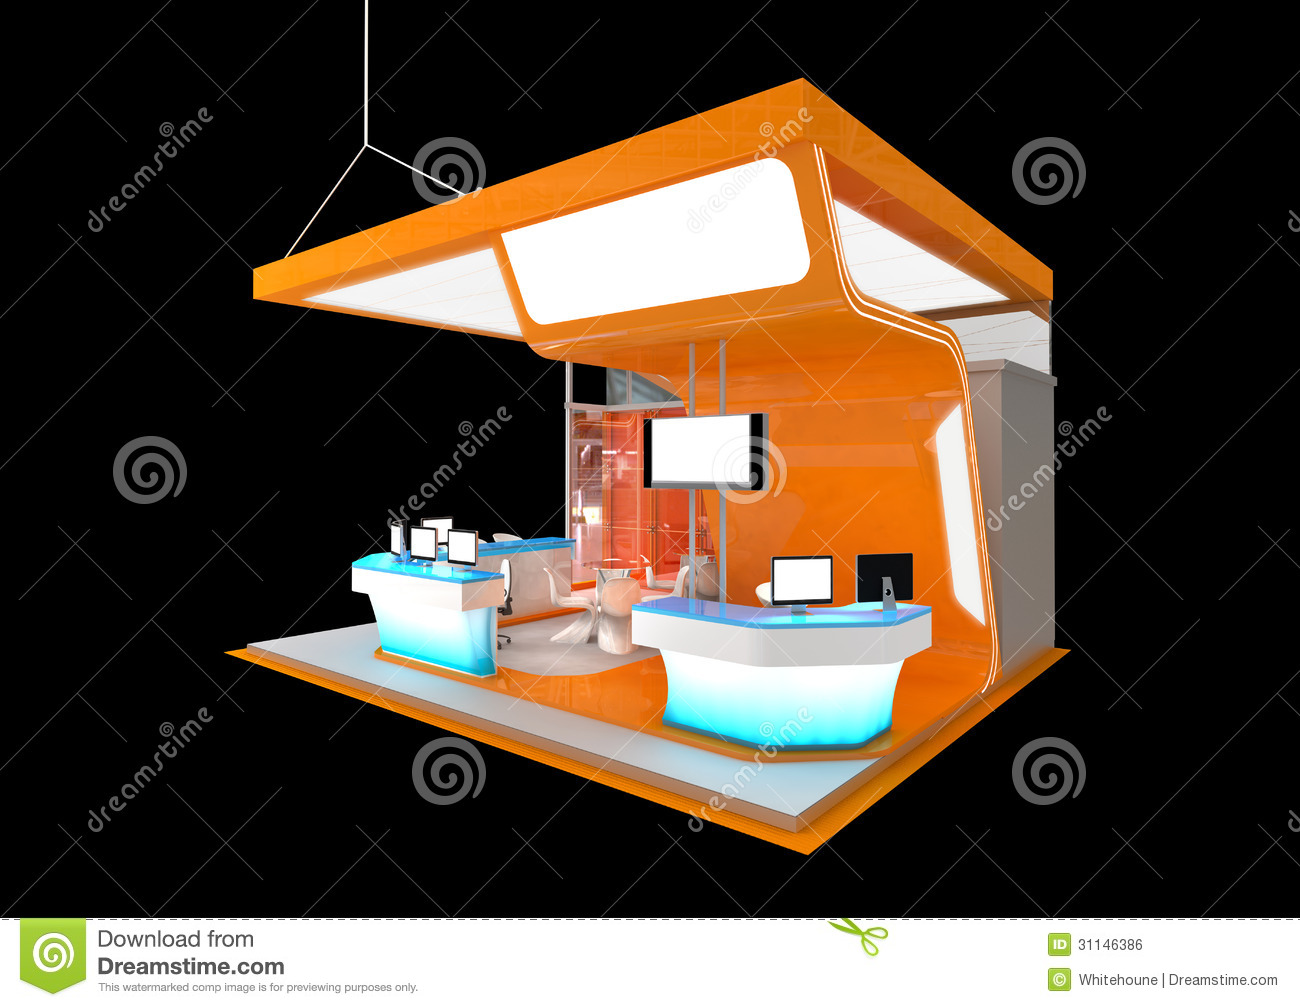 Modern Exhibition Stand Design : Exhibition stand royalty free stock image